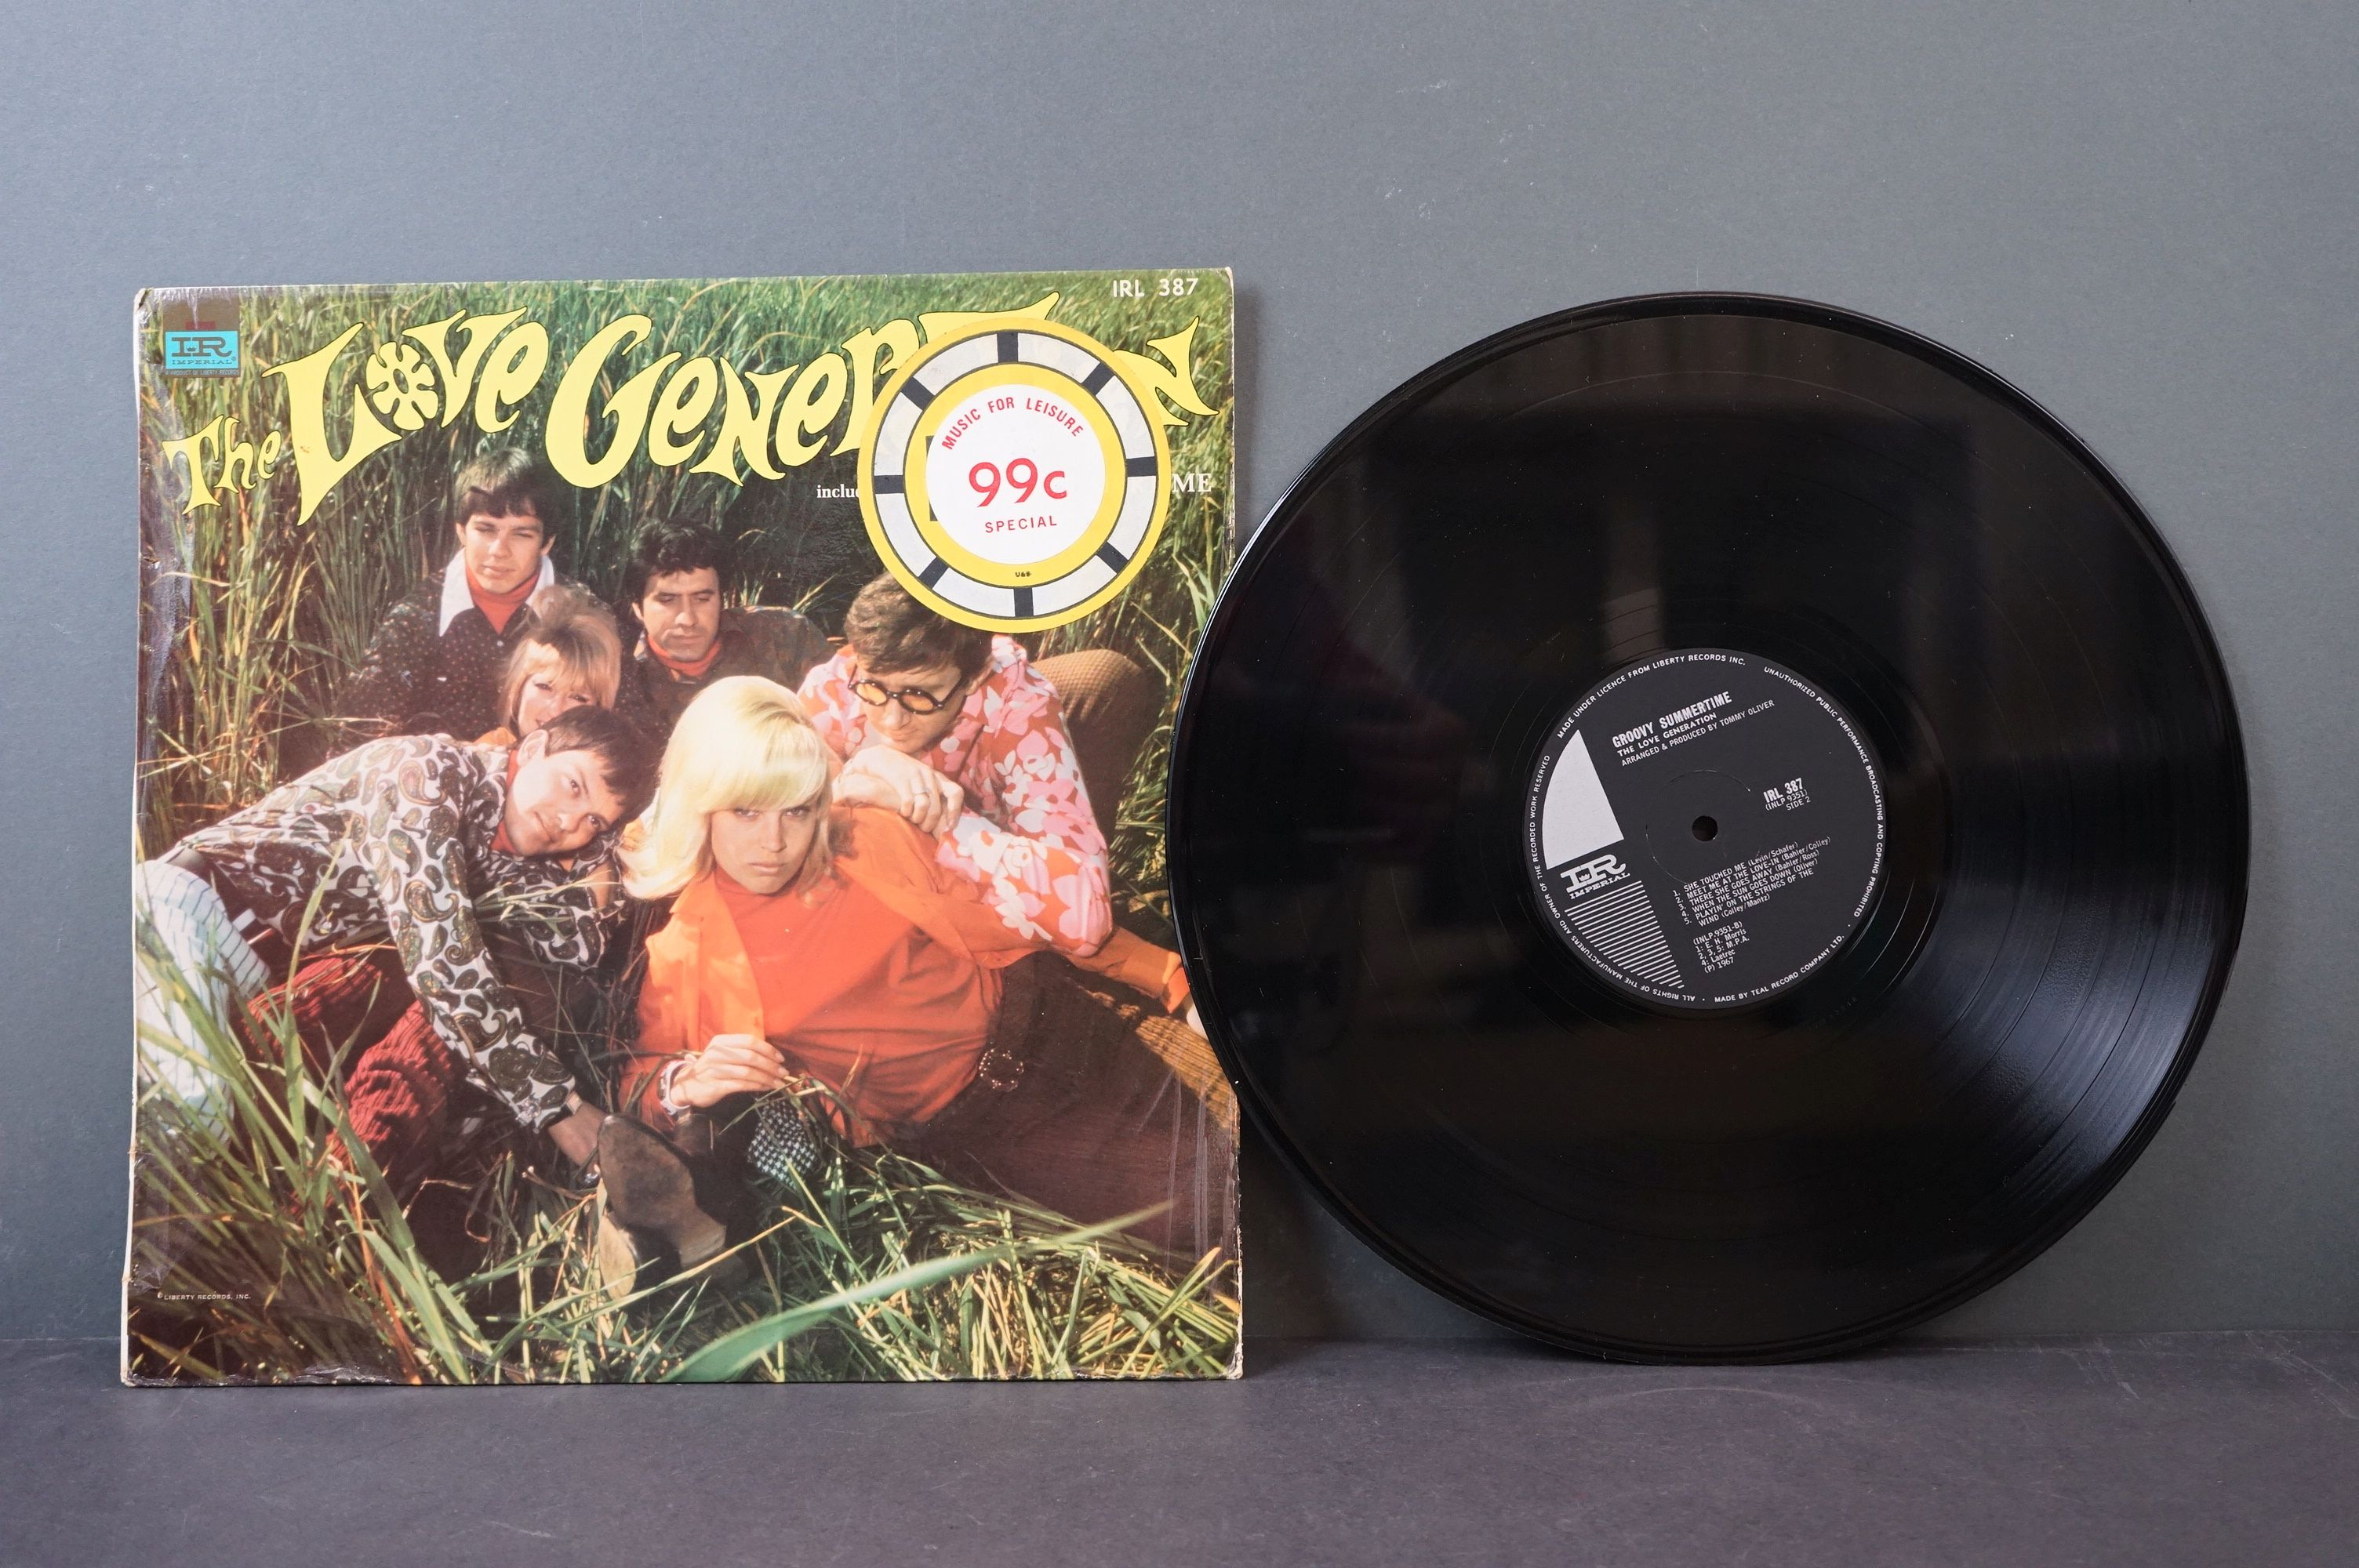 Vinyl - Psych / Rock / Garage - Four scarce African Pressing original albums to include Nazz - - Image 4 of 9